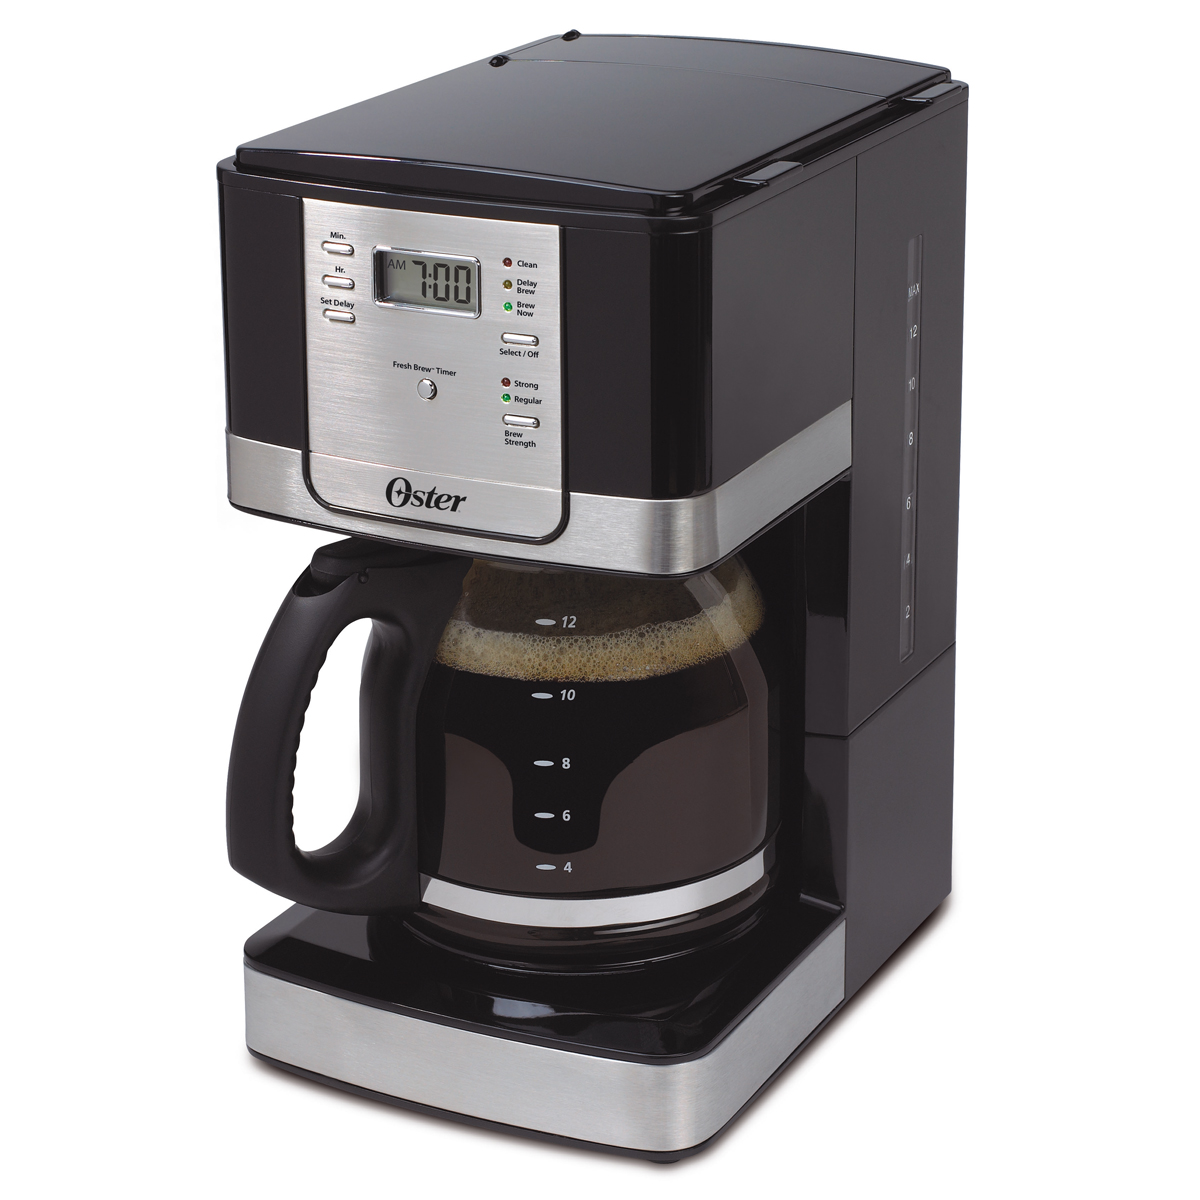 Oster 12-cup Programmable Coffee Maker 3314-33 Parts Oster Canada